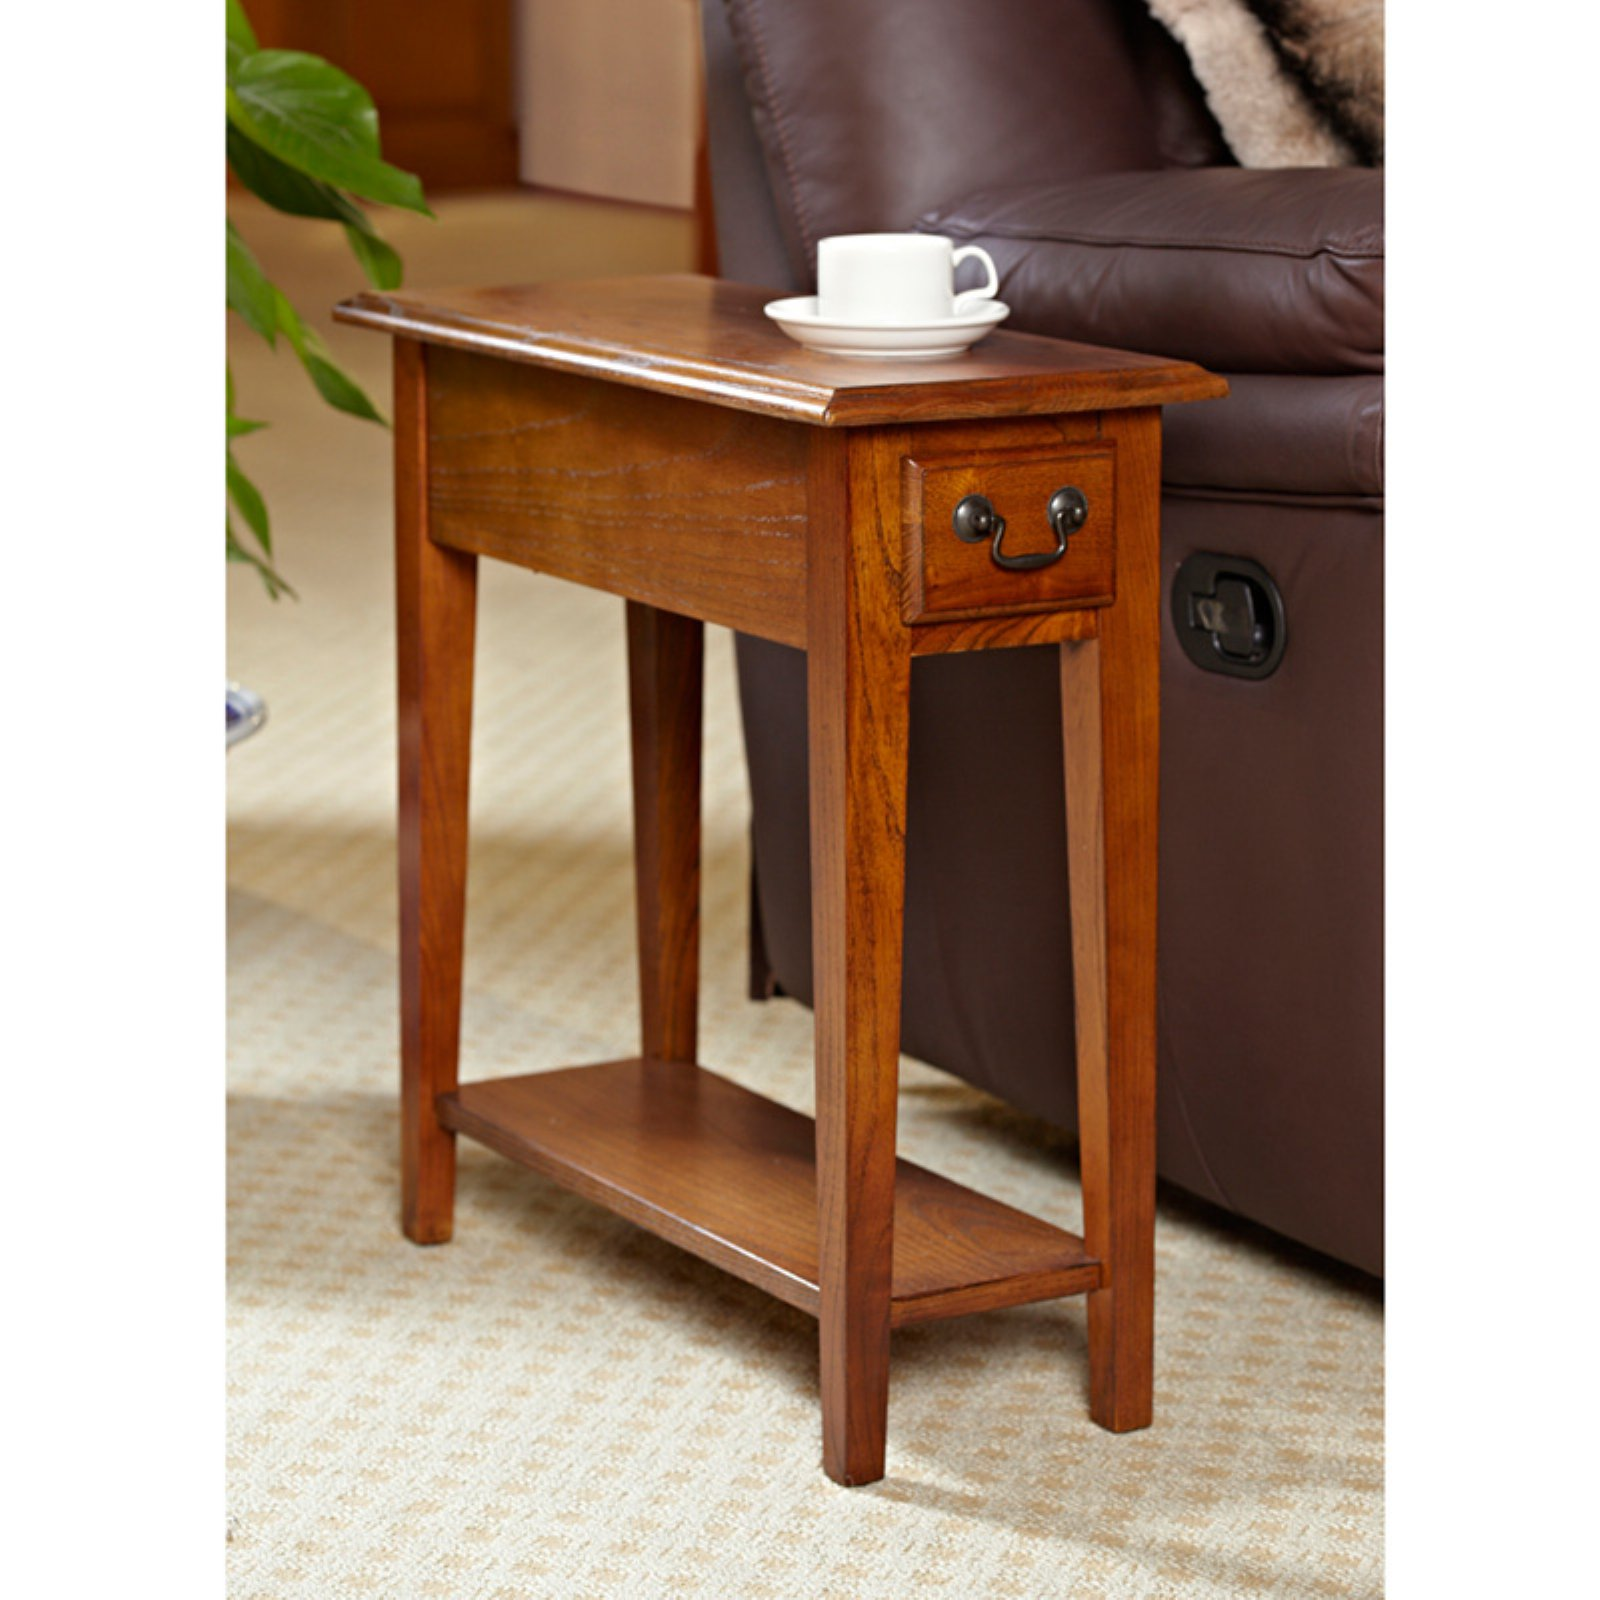 Hardwood 10 Inch Chairside End Table in Medium Oak